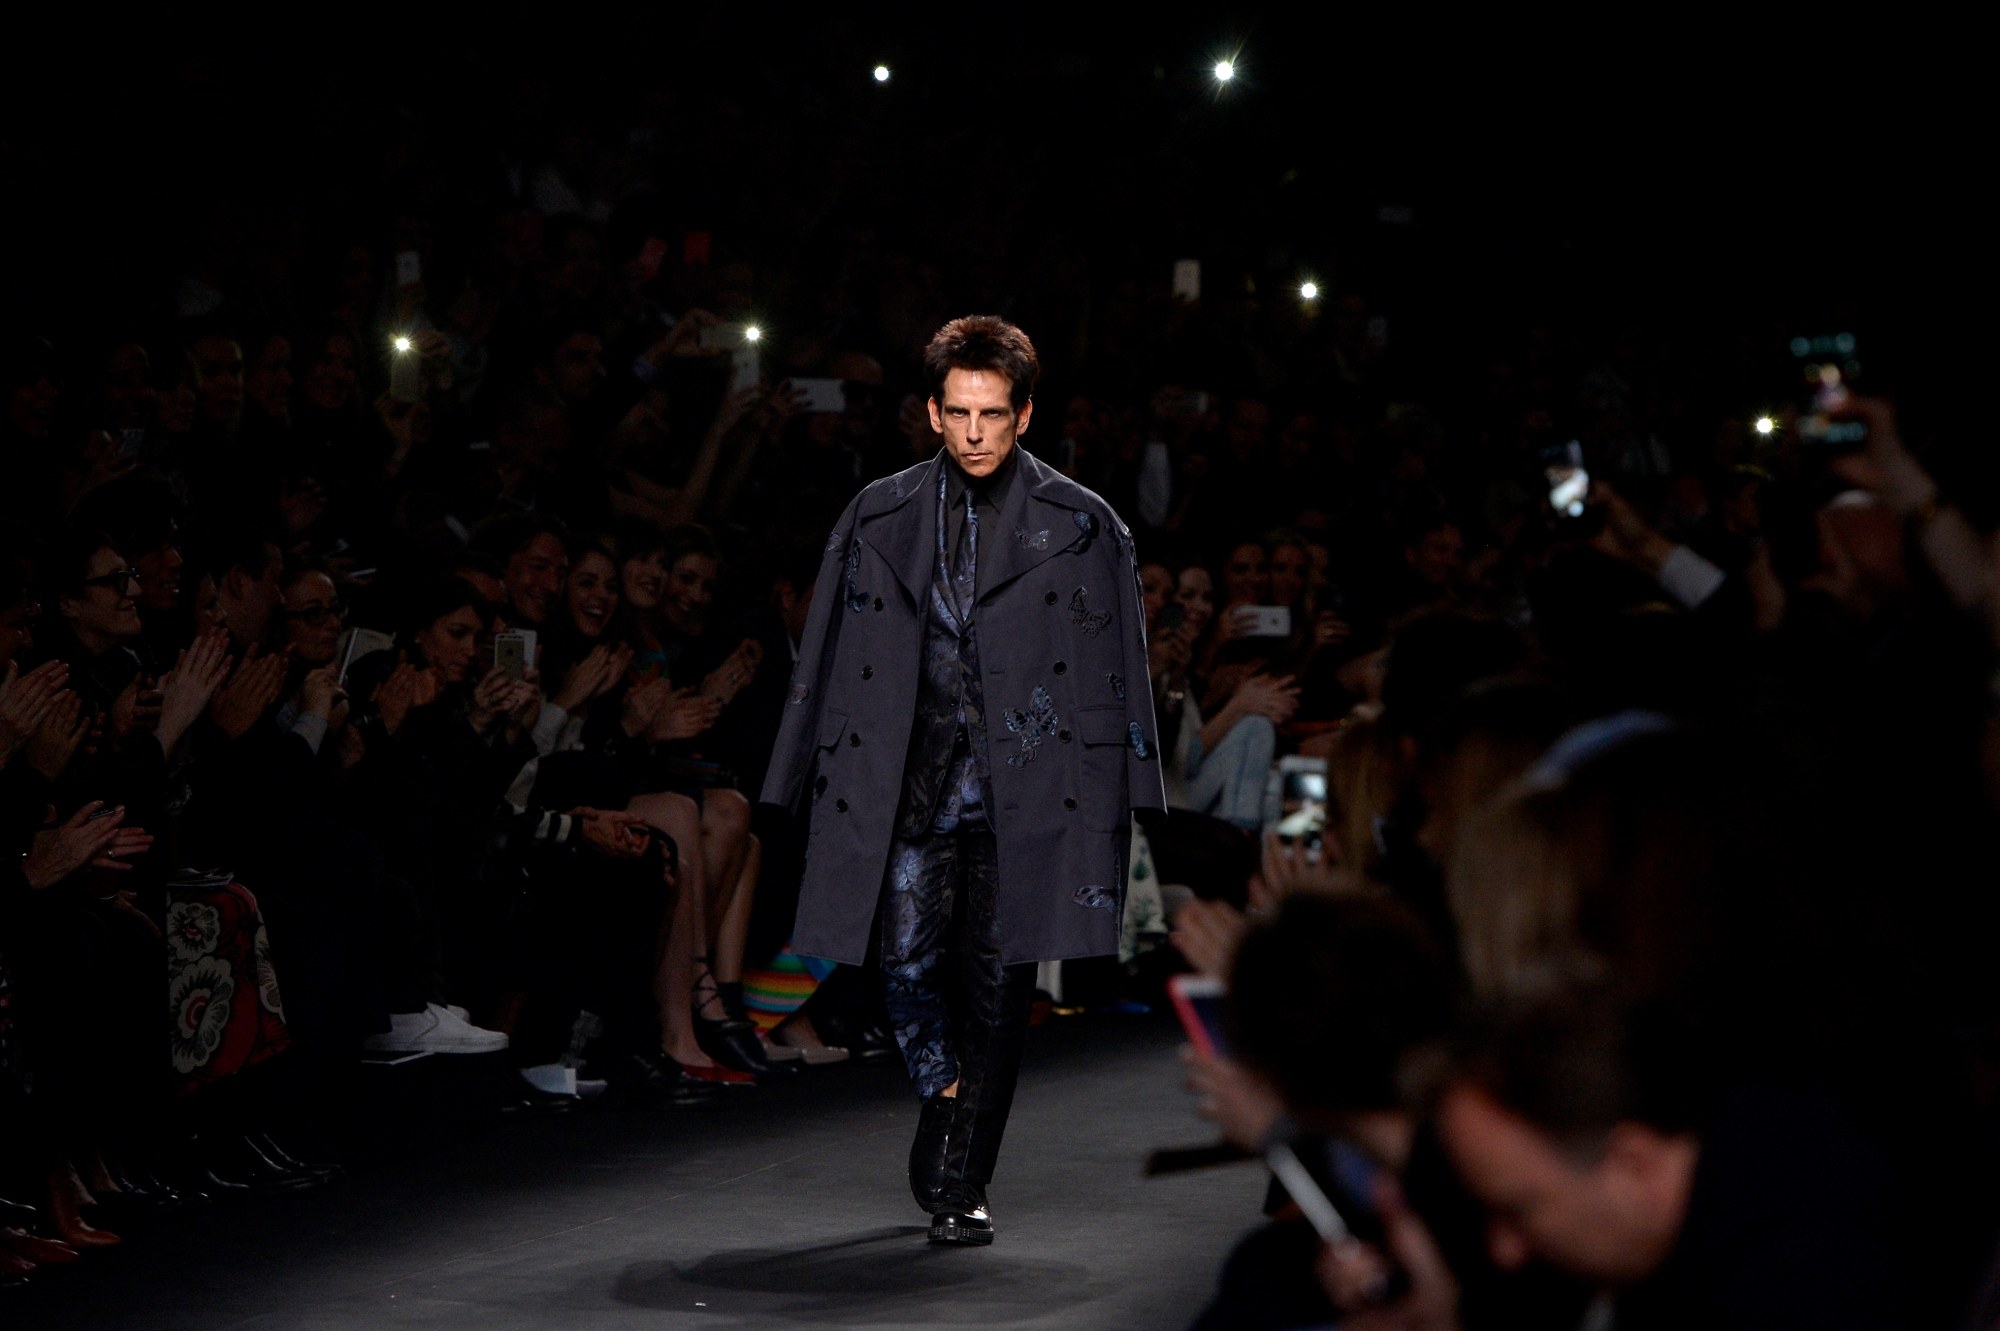 Paris Fashion Week Zoolander 2